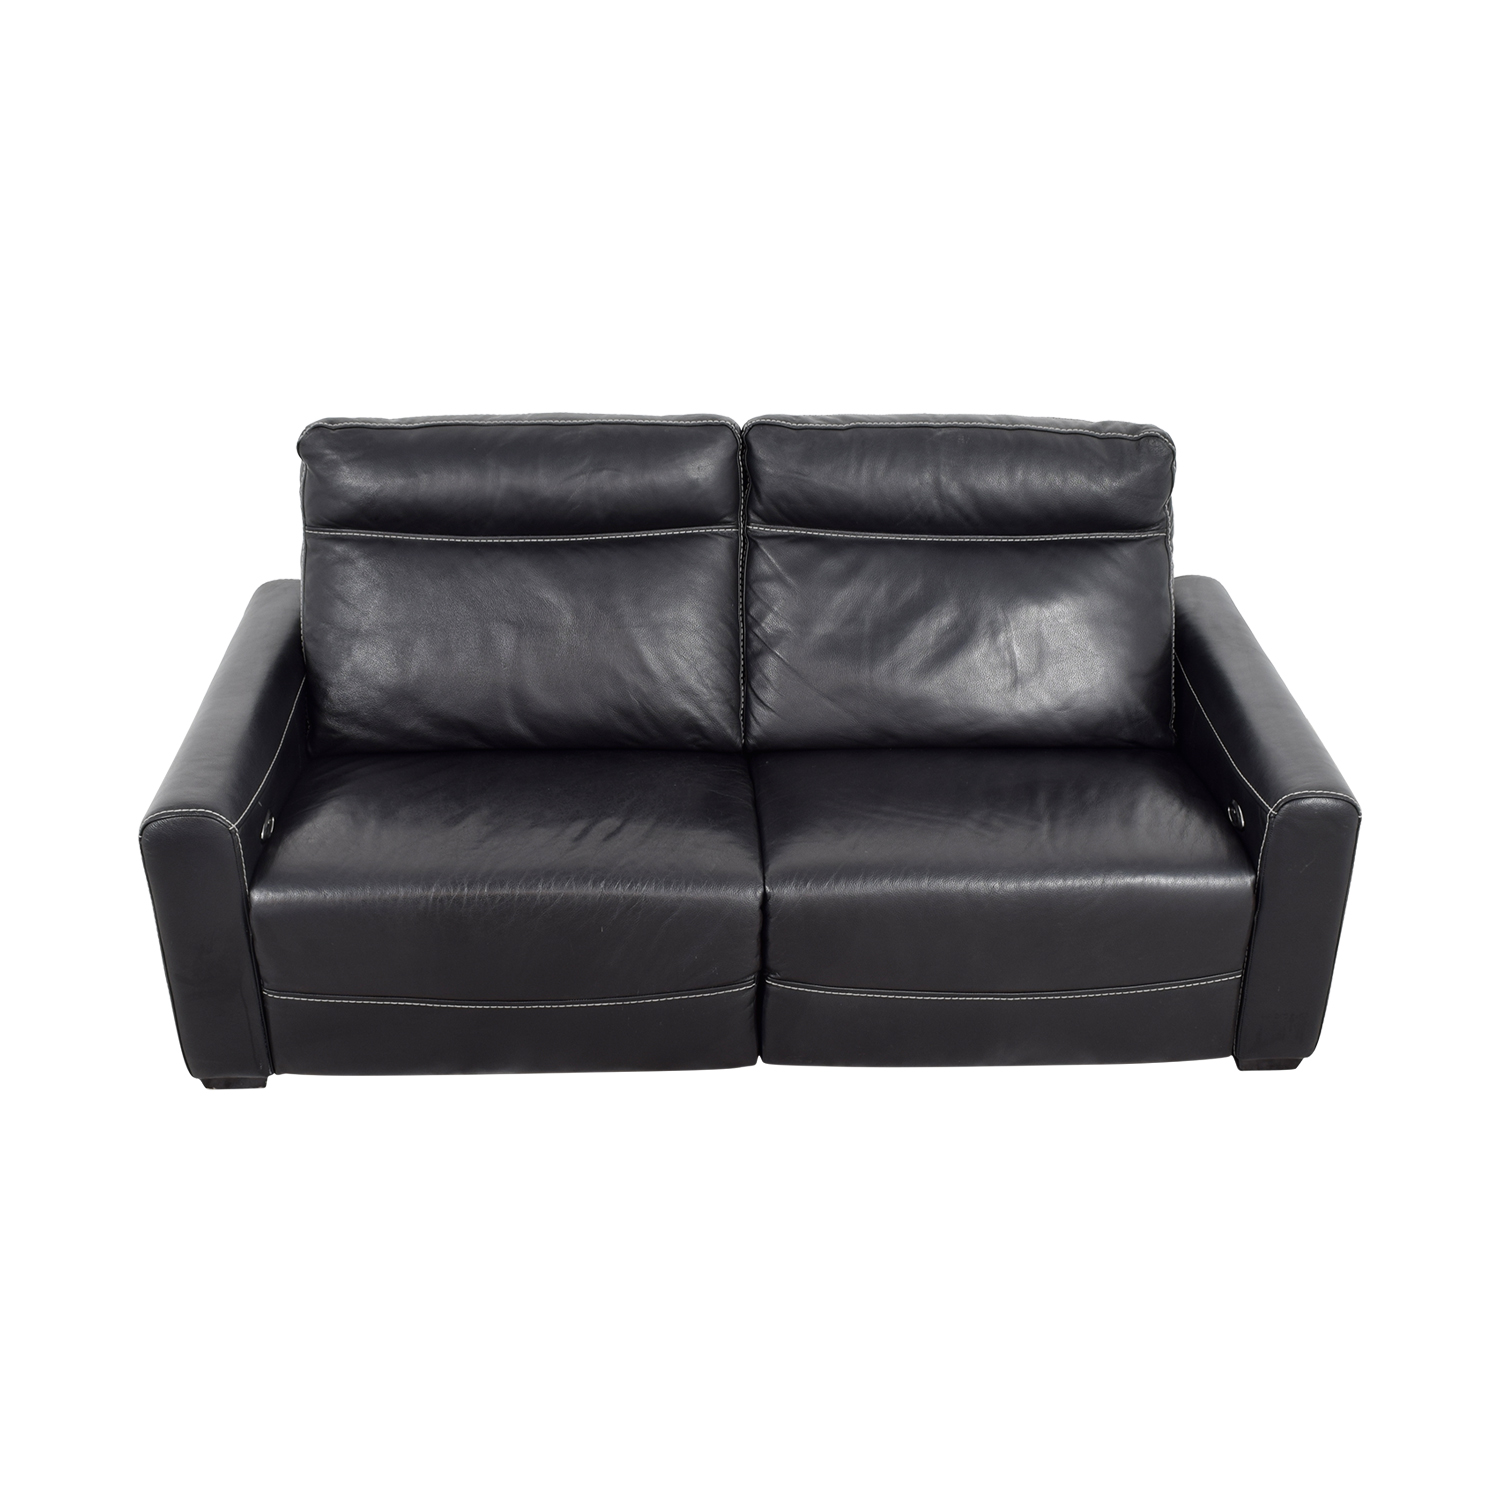 buy Macy's Black Leather Reclining Sofa Macy's